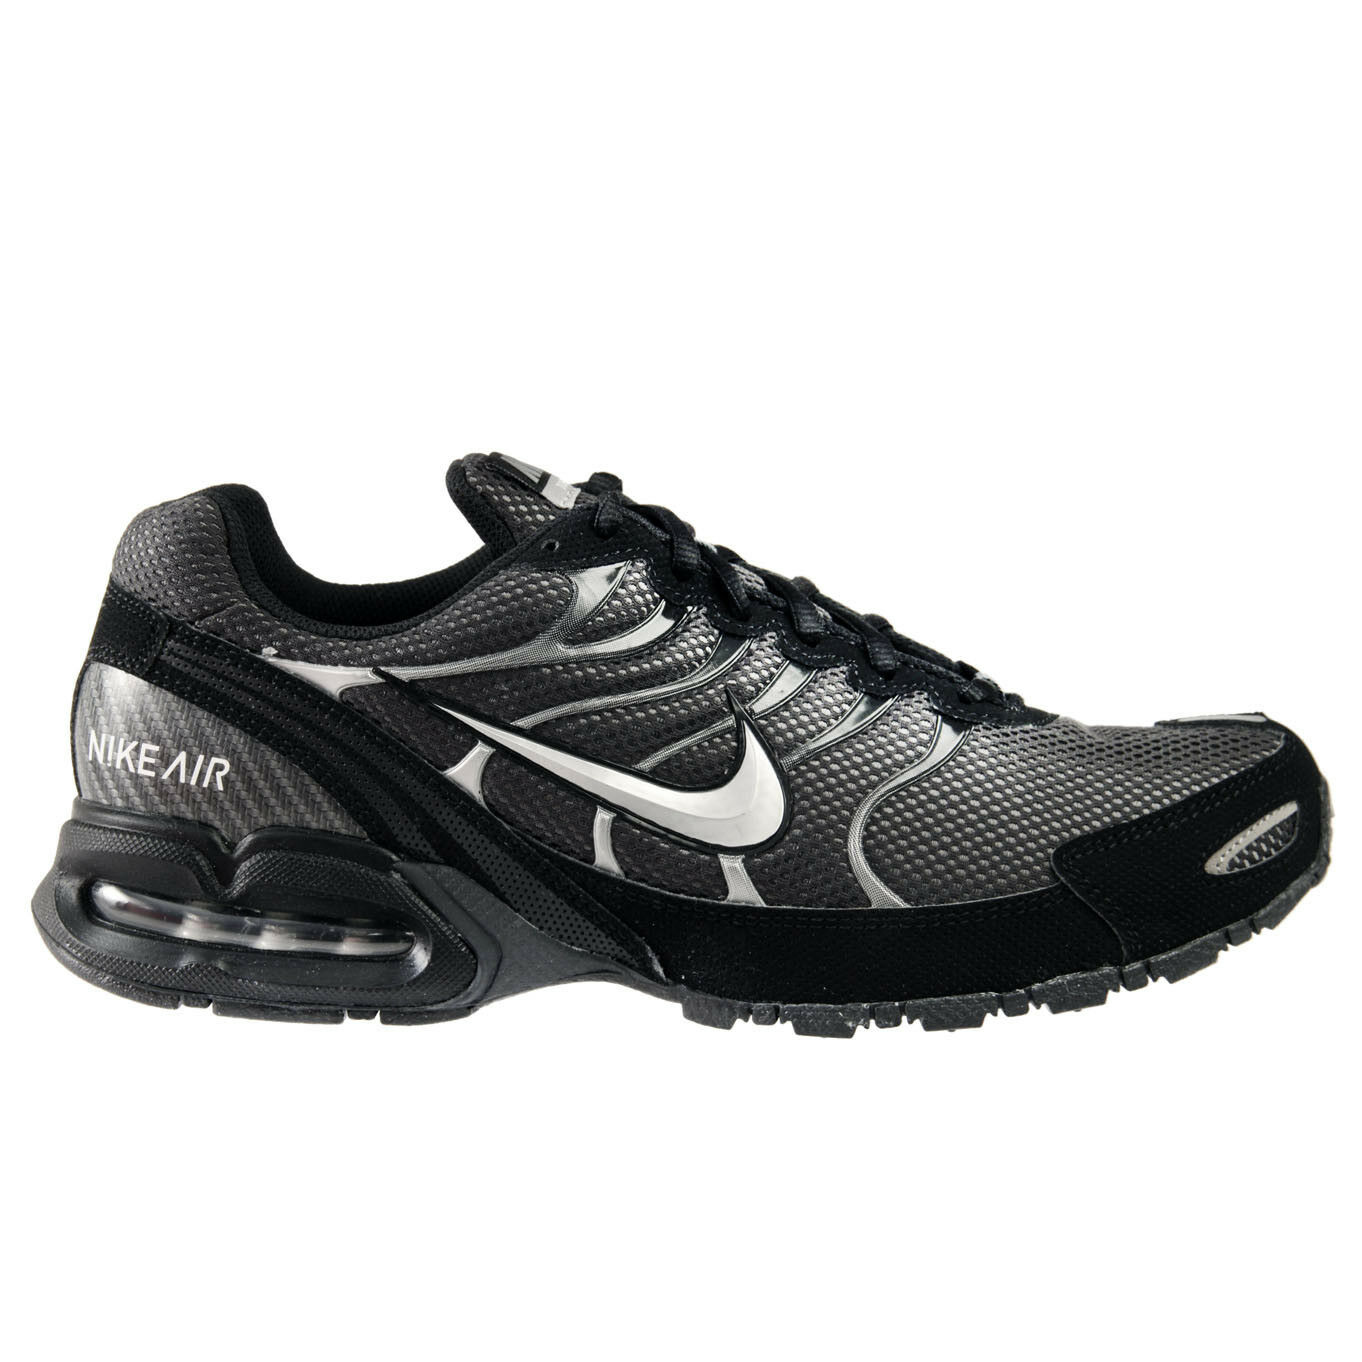 Nike Air Max Torch 4 Mens 343846-002 Black 10 Anthracite Running Shoes Size 10 Black ecfcb8